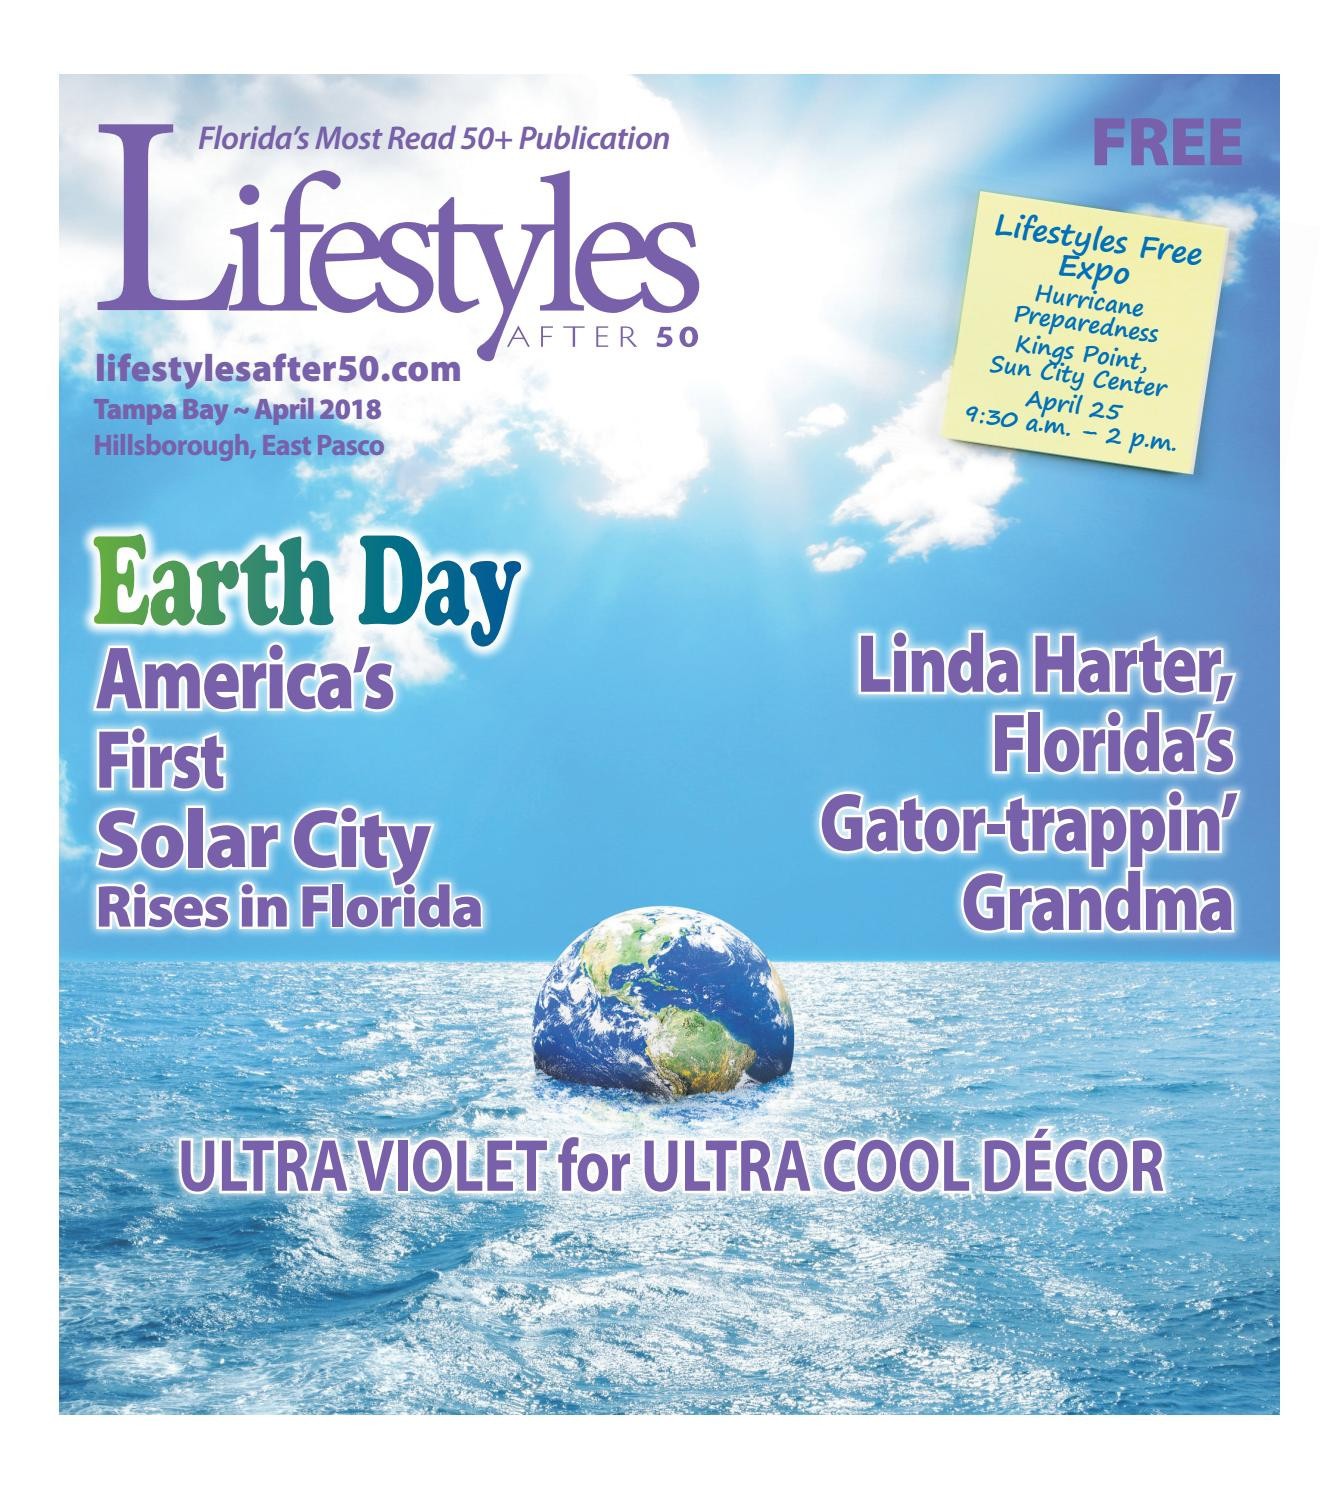 Lifestyles After 50 Tampa Bay Hillsborough East Pasco Edition April 2018 by News Connection USA LLC issuu